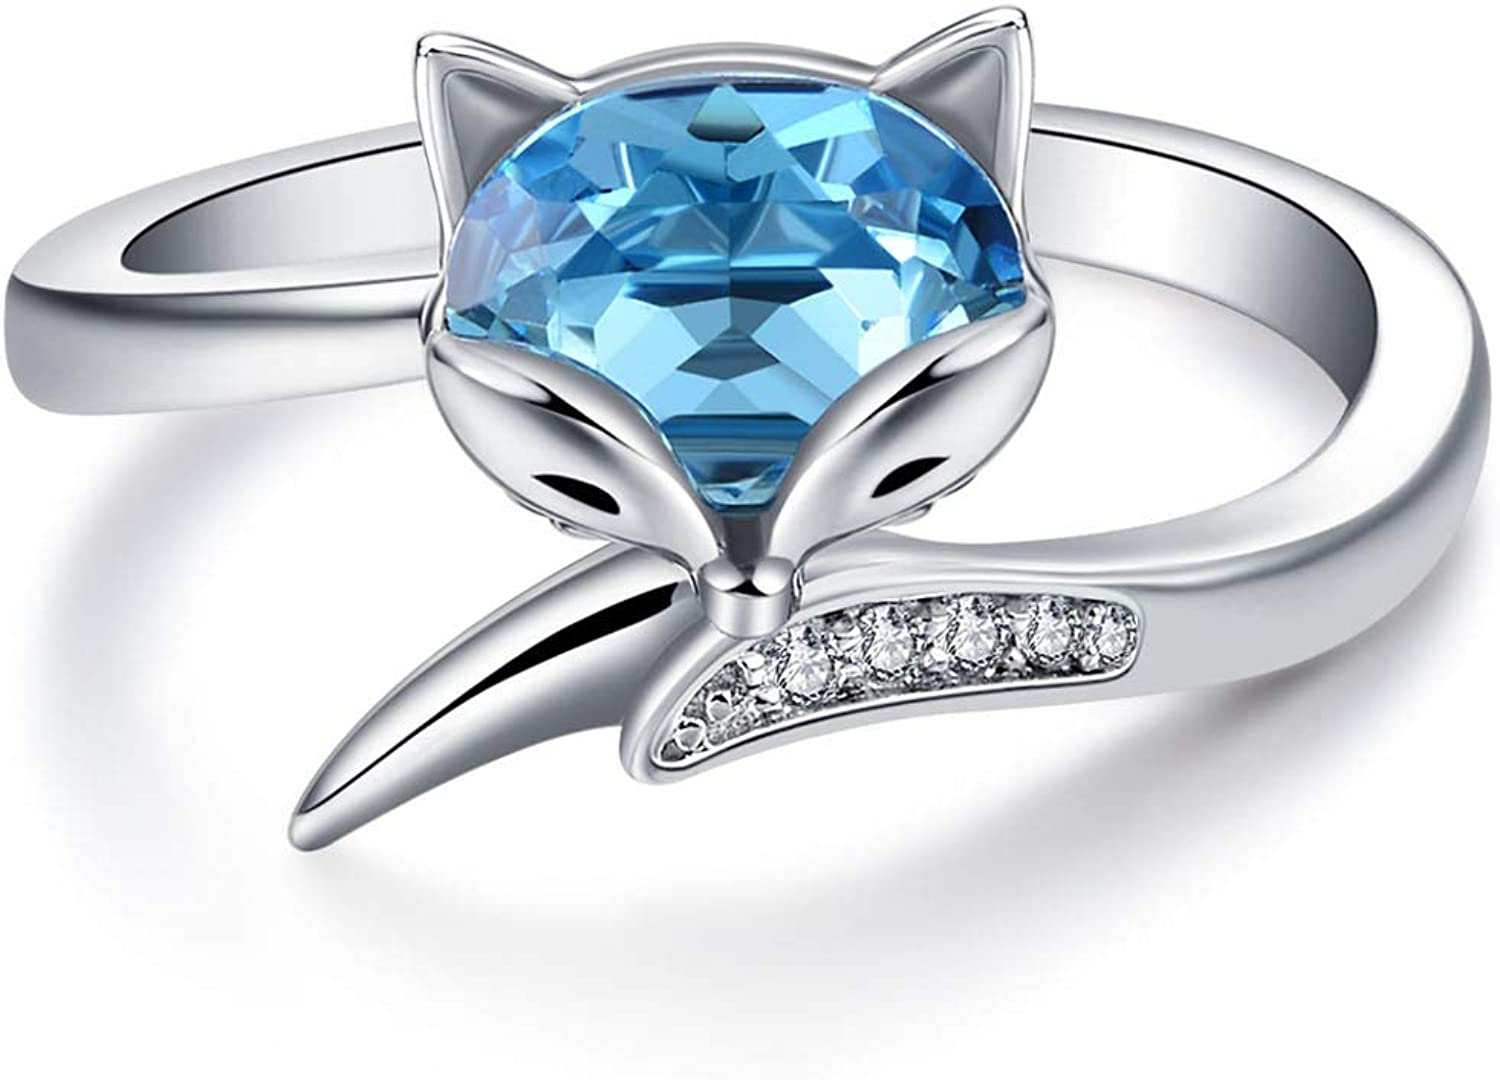 Max 86% OFF AOBOCO Sterling Silver Fox Ring for Aquamarine Women Simulated Some reservation